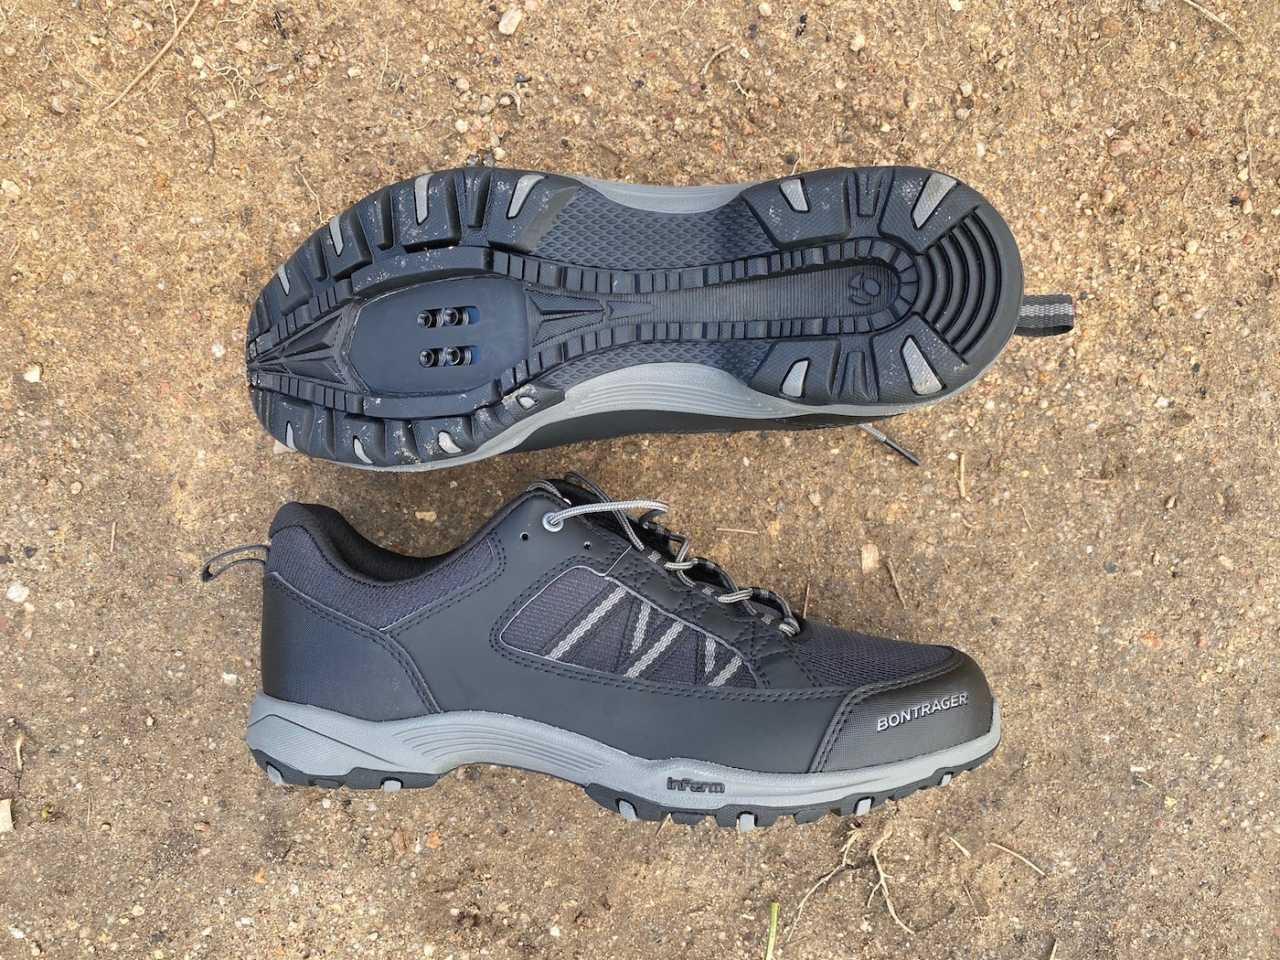 Bontrager multisport cycling shoes